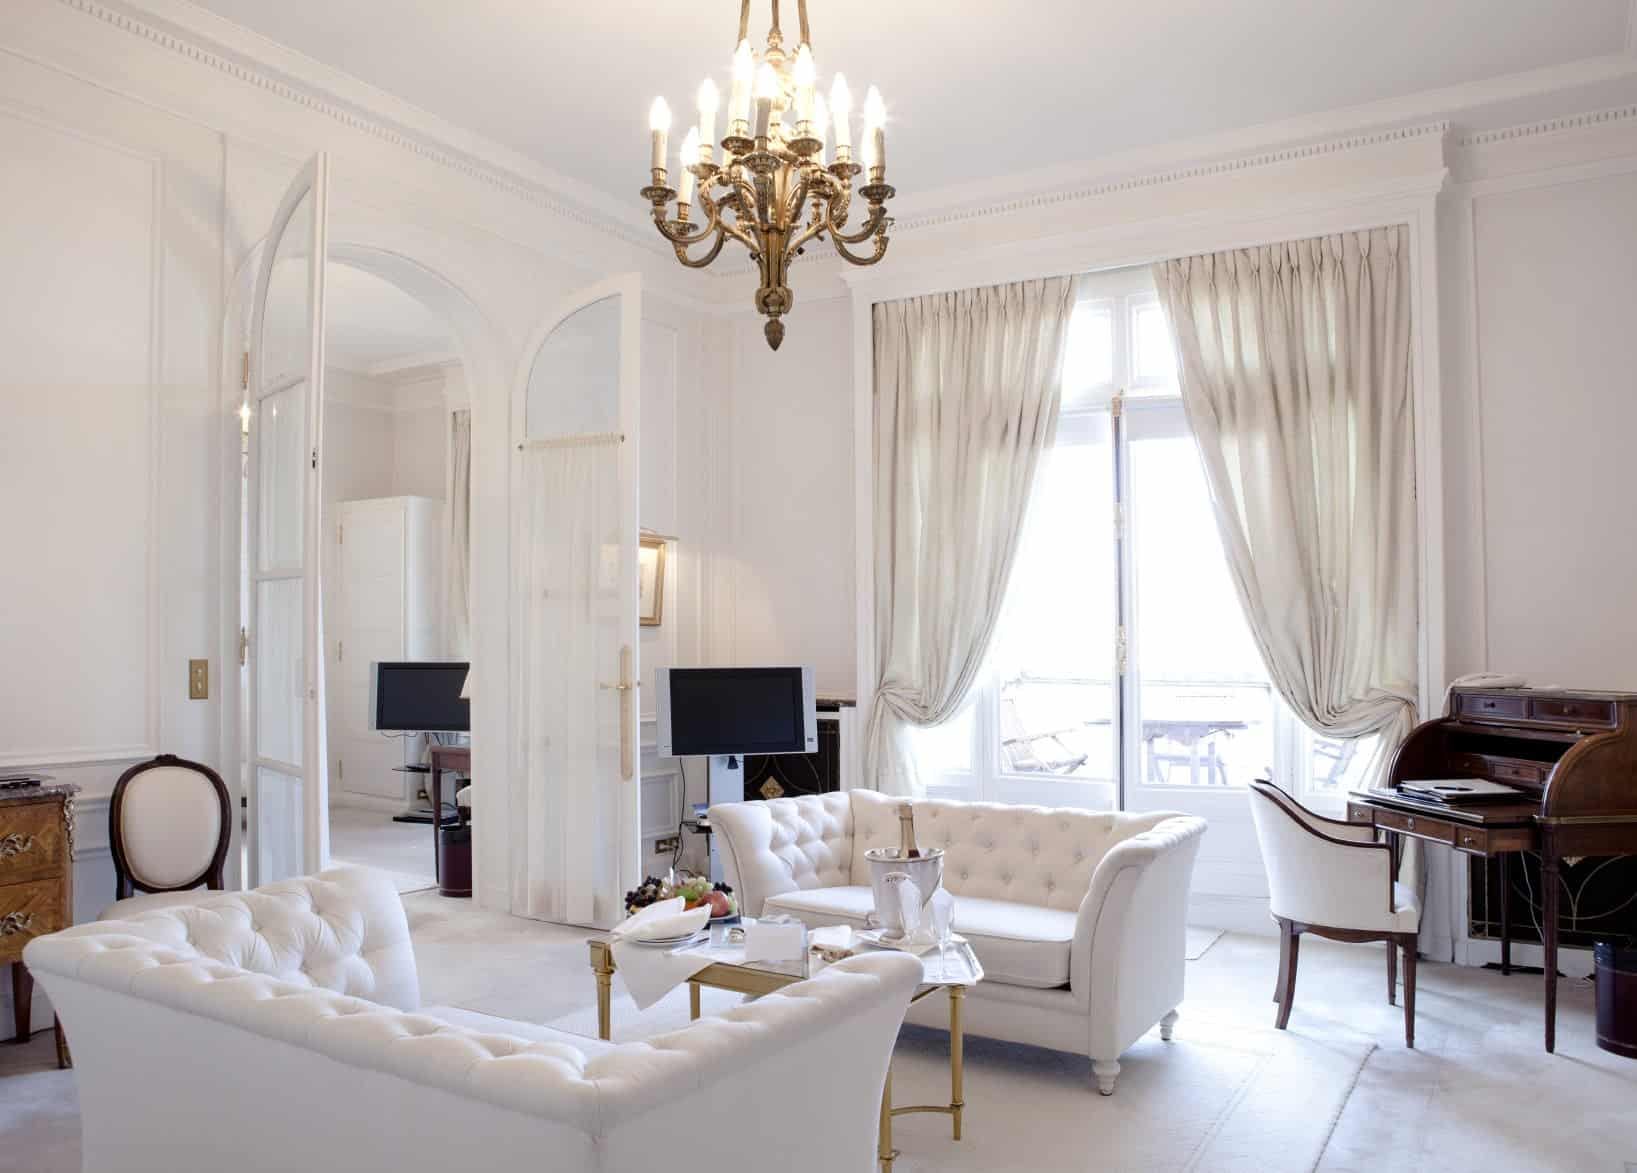 This living room features white classy couches and a nice center table. The room is lighted by a gorgeous chandelier.